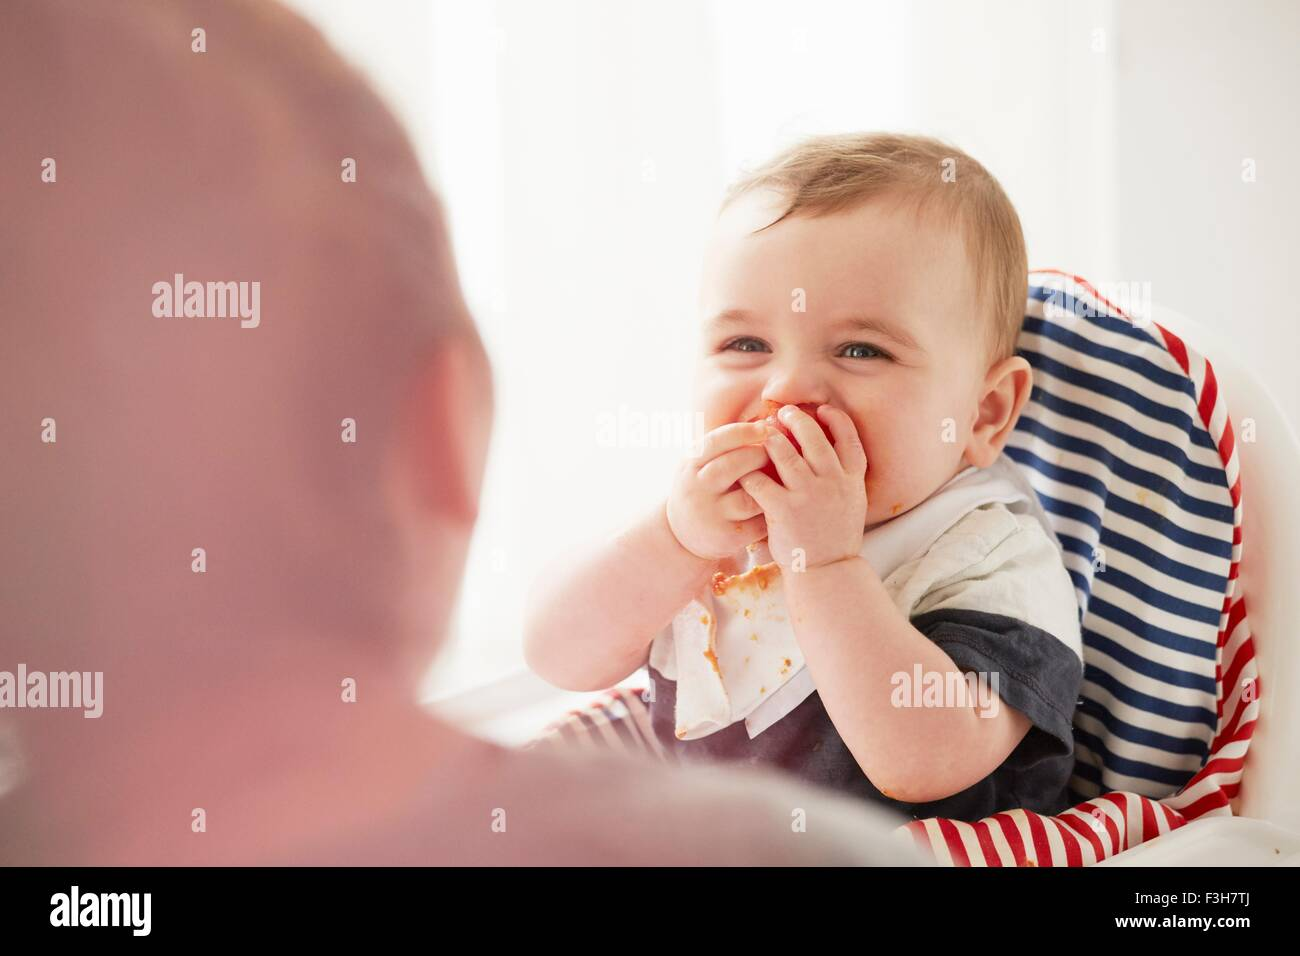 Baby boy feeding himself in baby chair - Stock Image